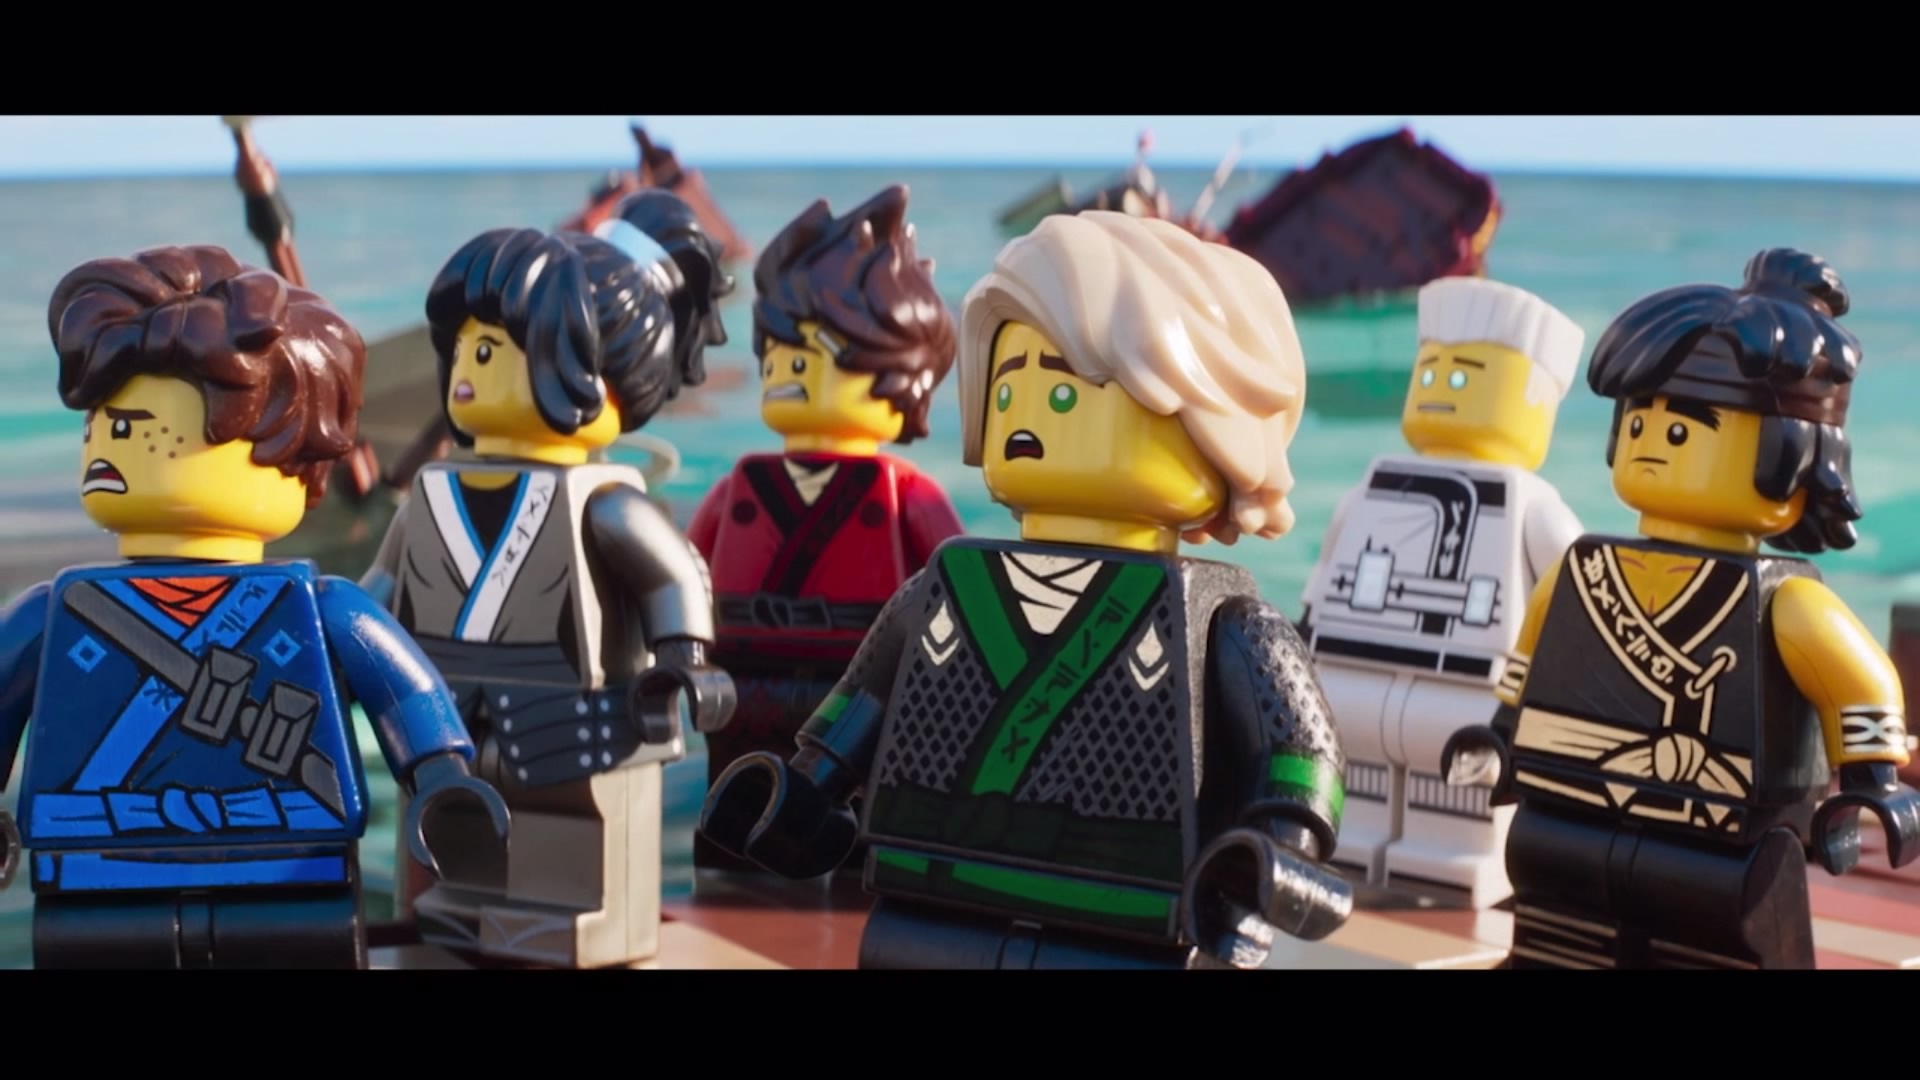 Lego ninjago movie video game walkthrough level 3 ninjago city docks gameranx - Ninja ninjago ...